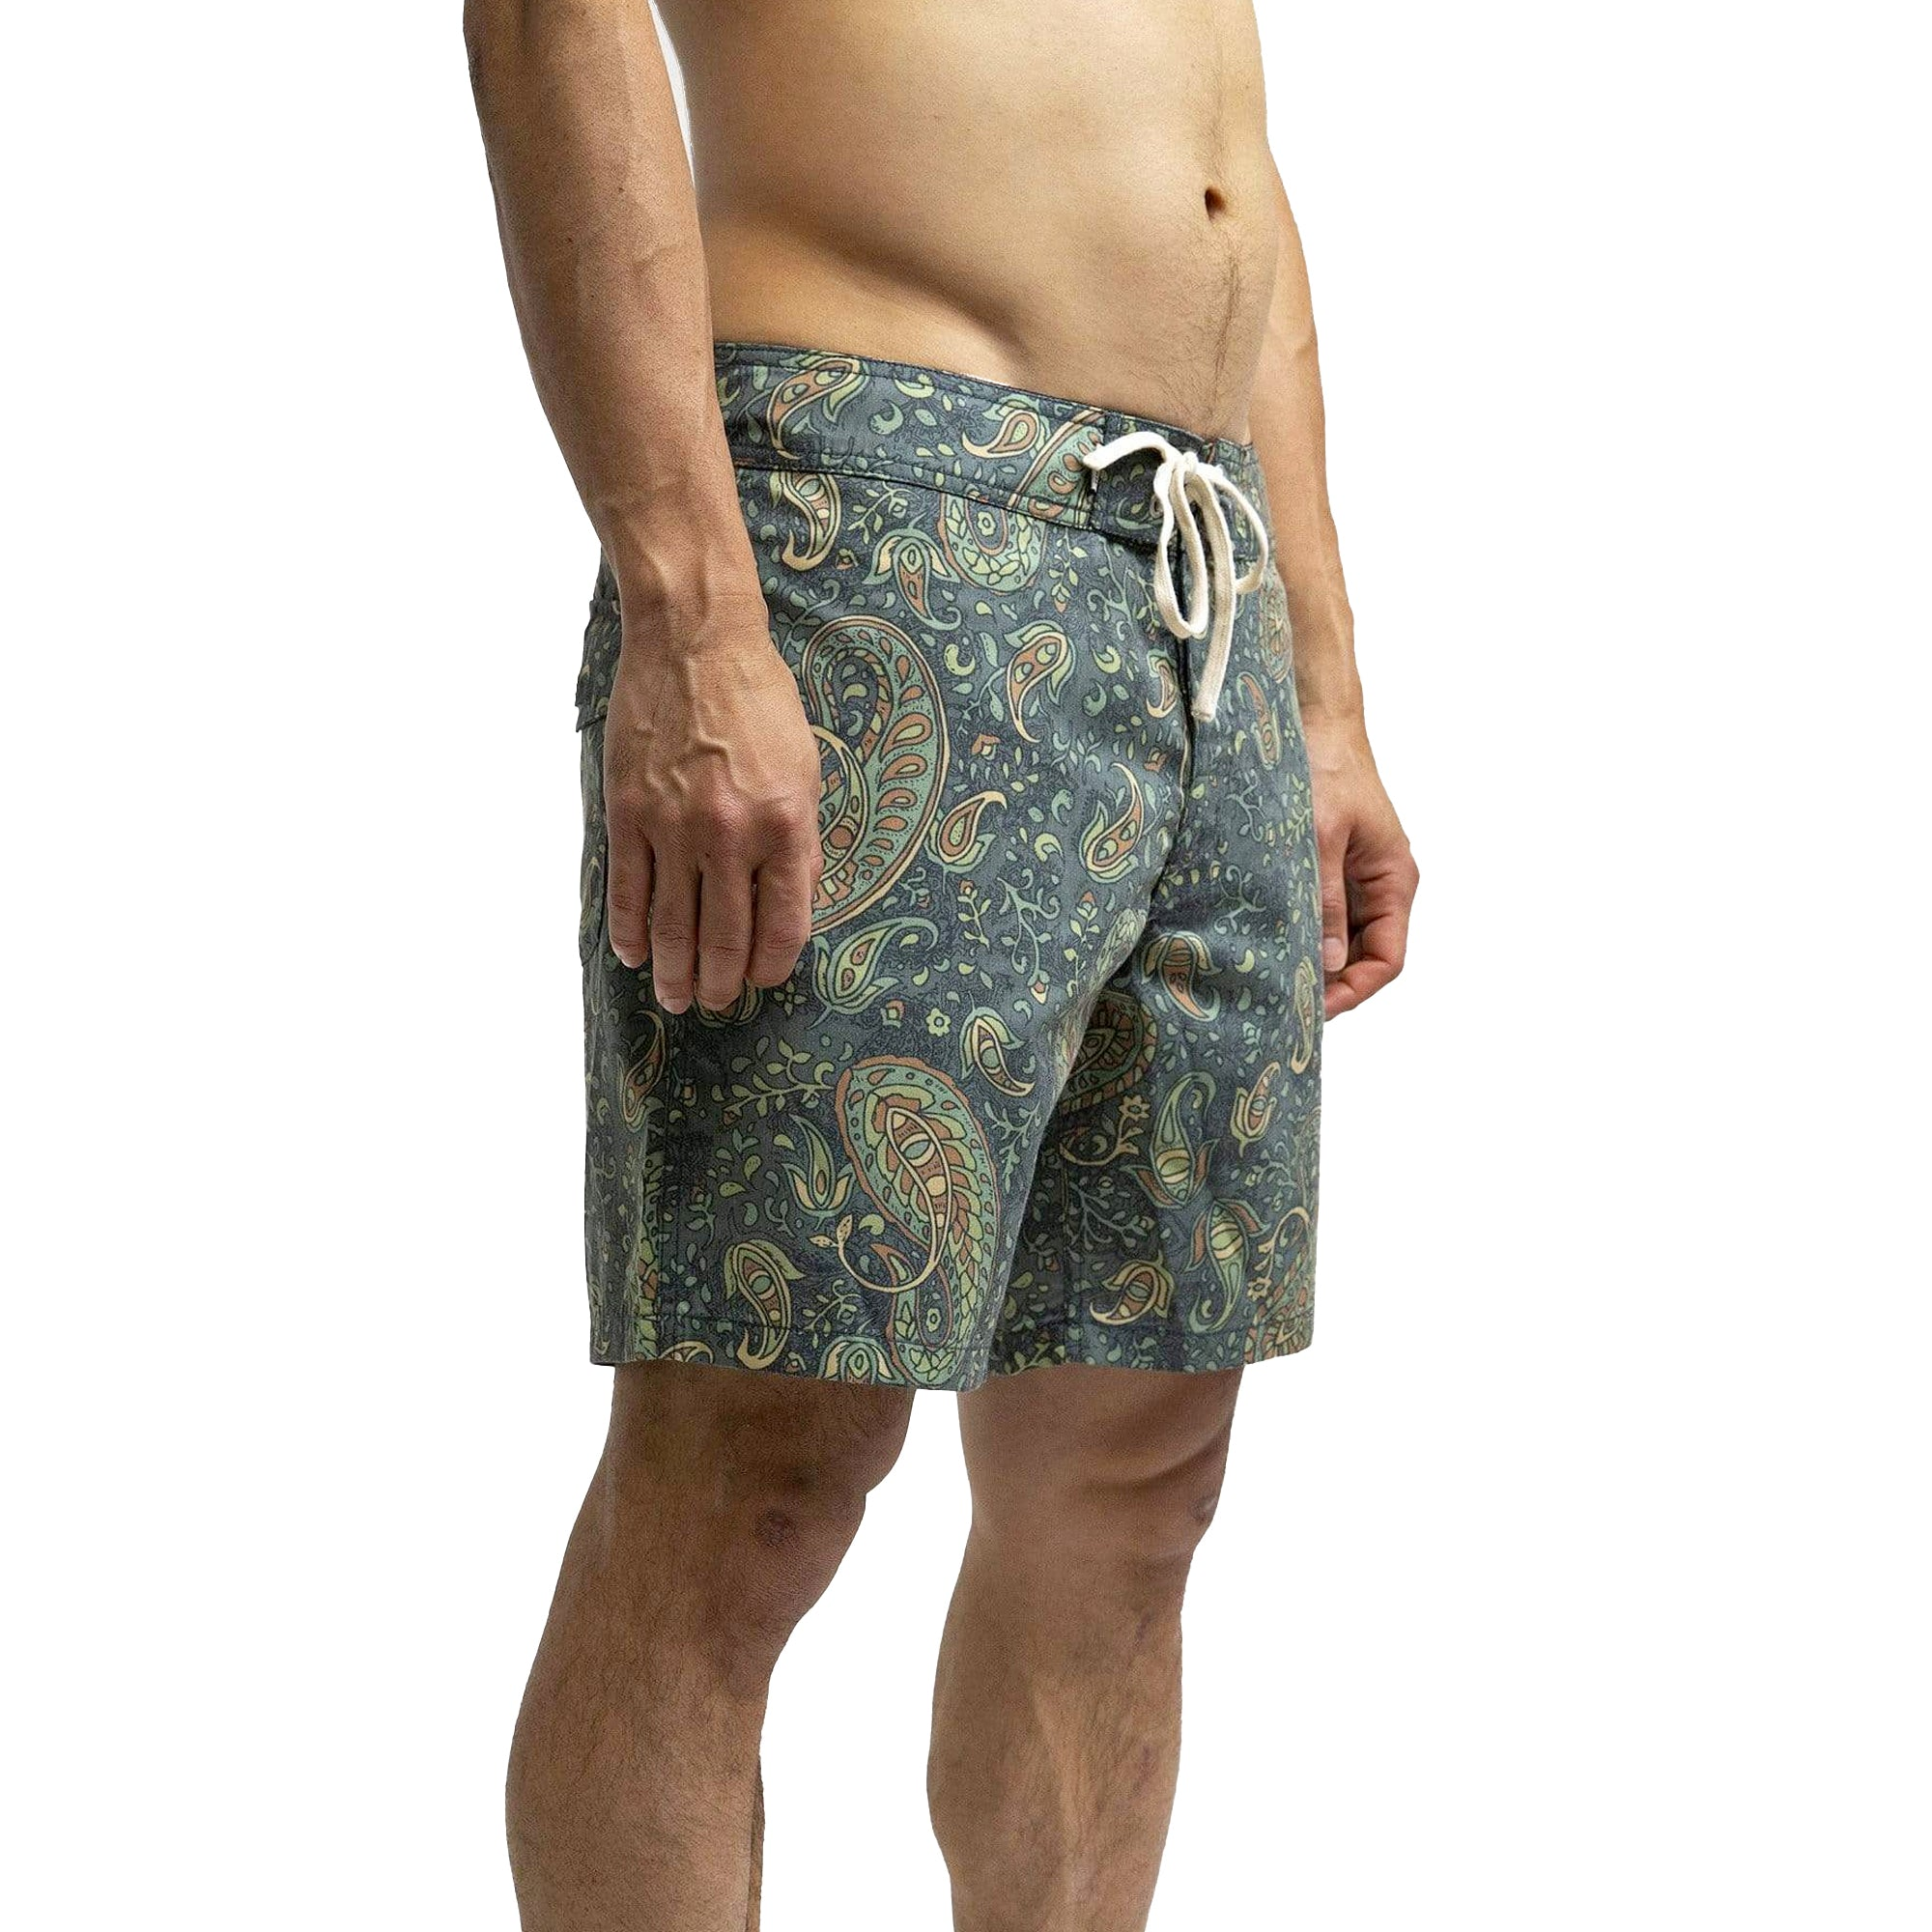 "Rhythm Tallows 17"" Men's Boardshorts"